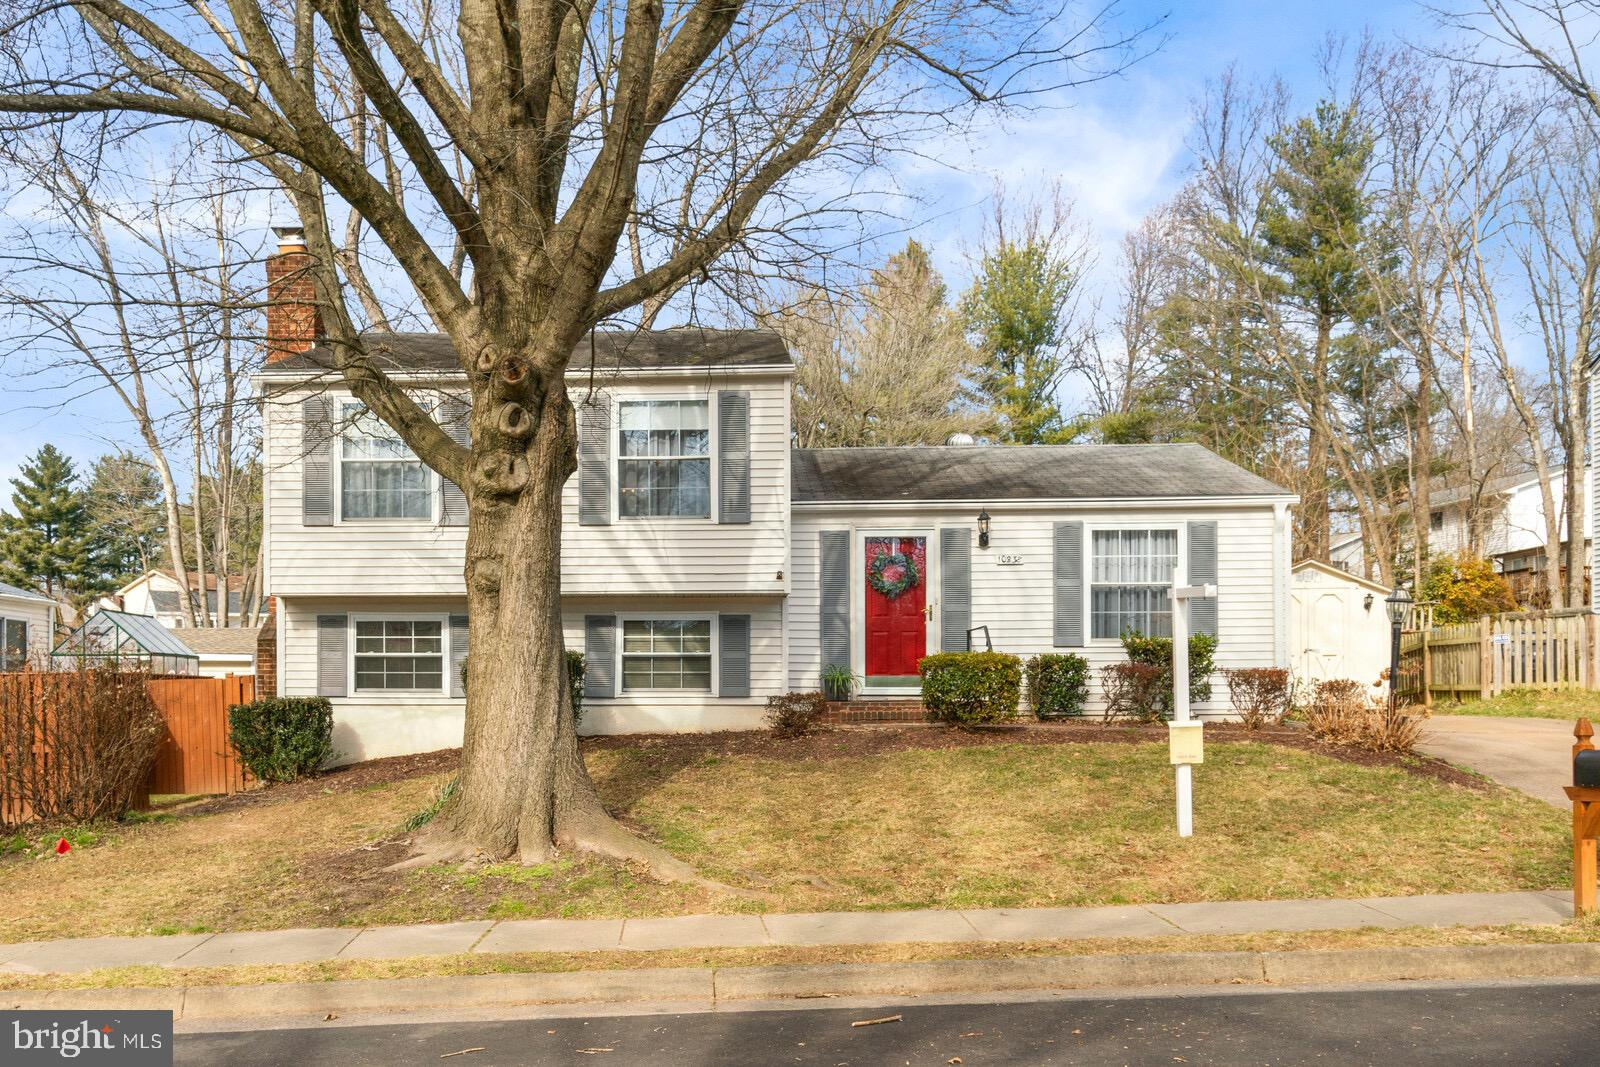 BEAUTIFULLY MAINTAINED AND WELL CARED FOR HOME, 3 BEDROOM/2.5 BATHROOM SPLIT LEVEL IN BURKE CENTRE C